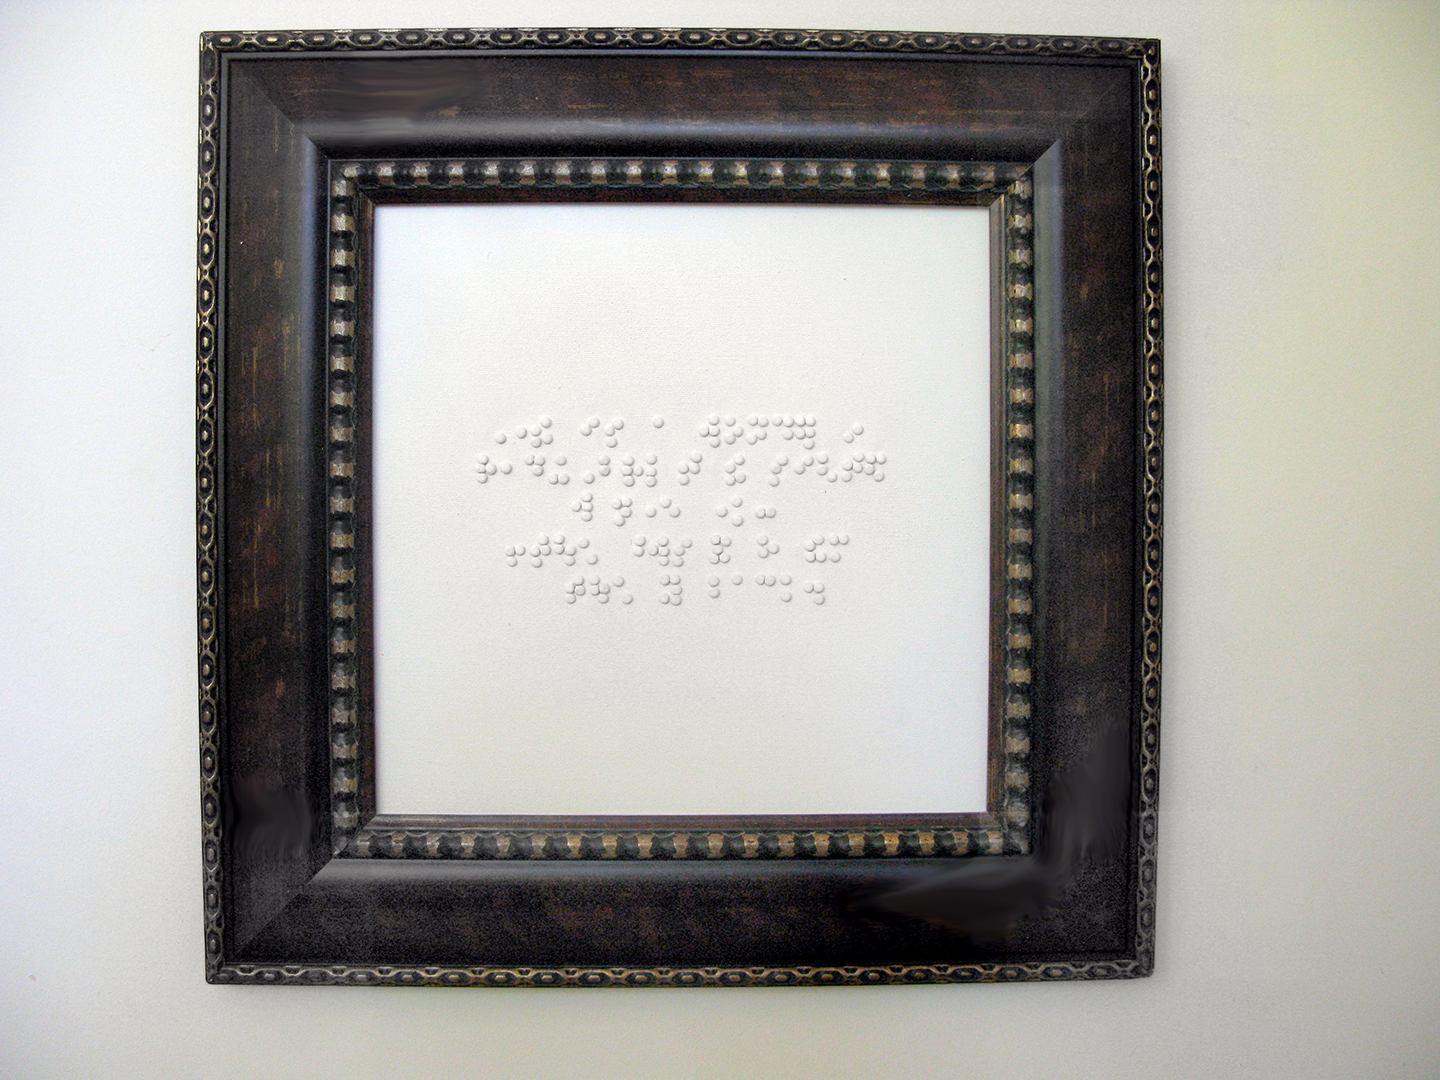 """Stuart Wagner  Touching Words, 2013 canvas, wood, braille dots, mixed media 18.5"""" x 18.5"""" $600"""